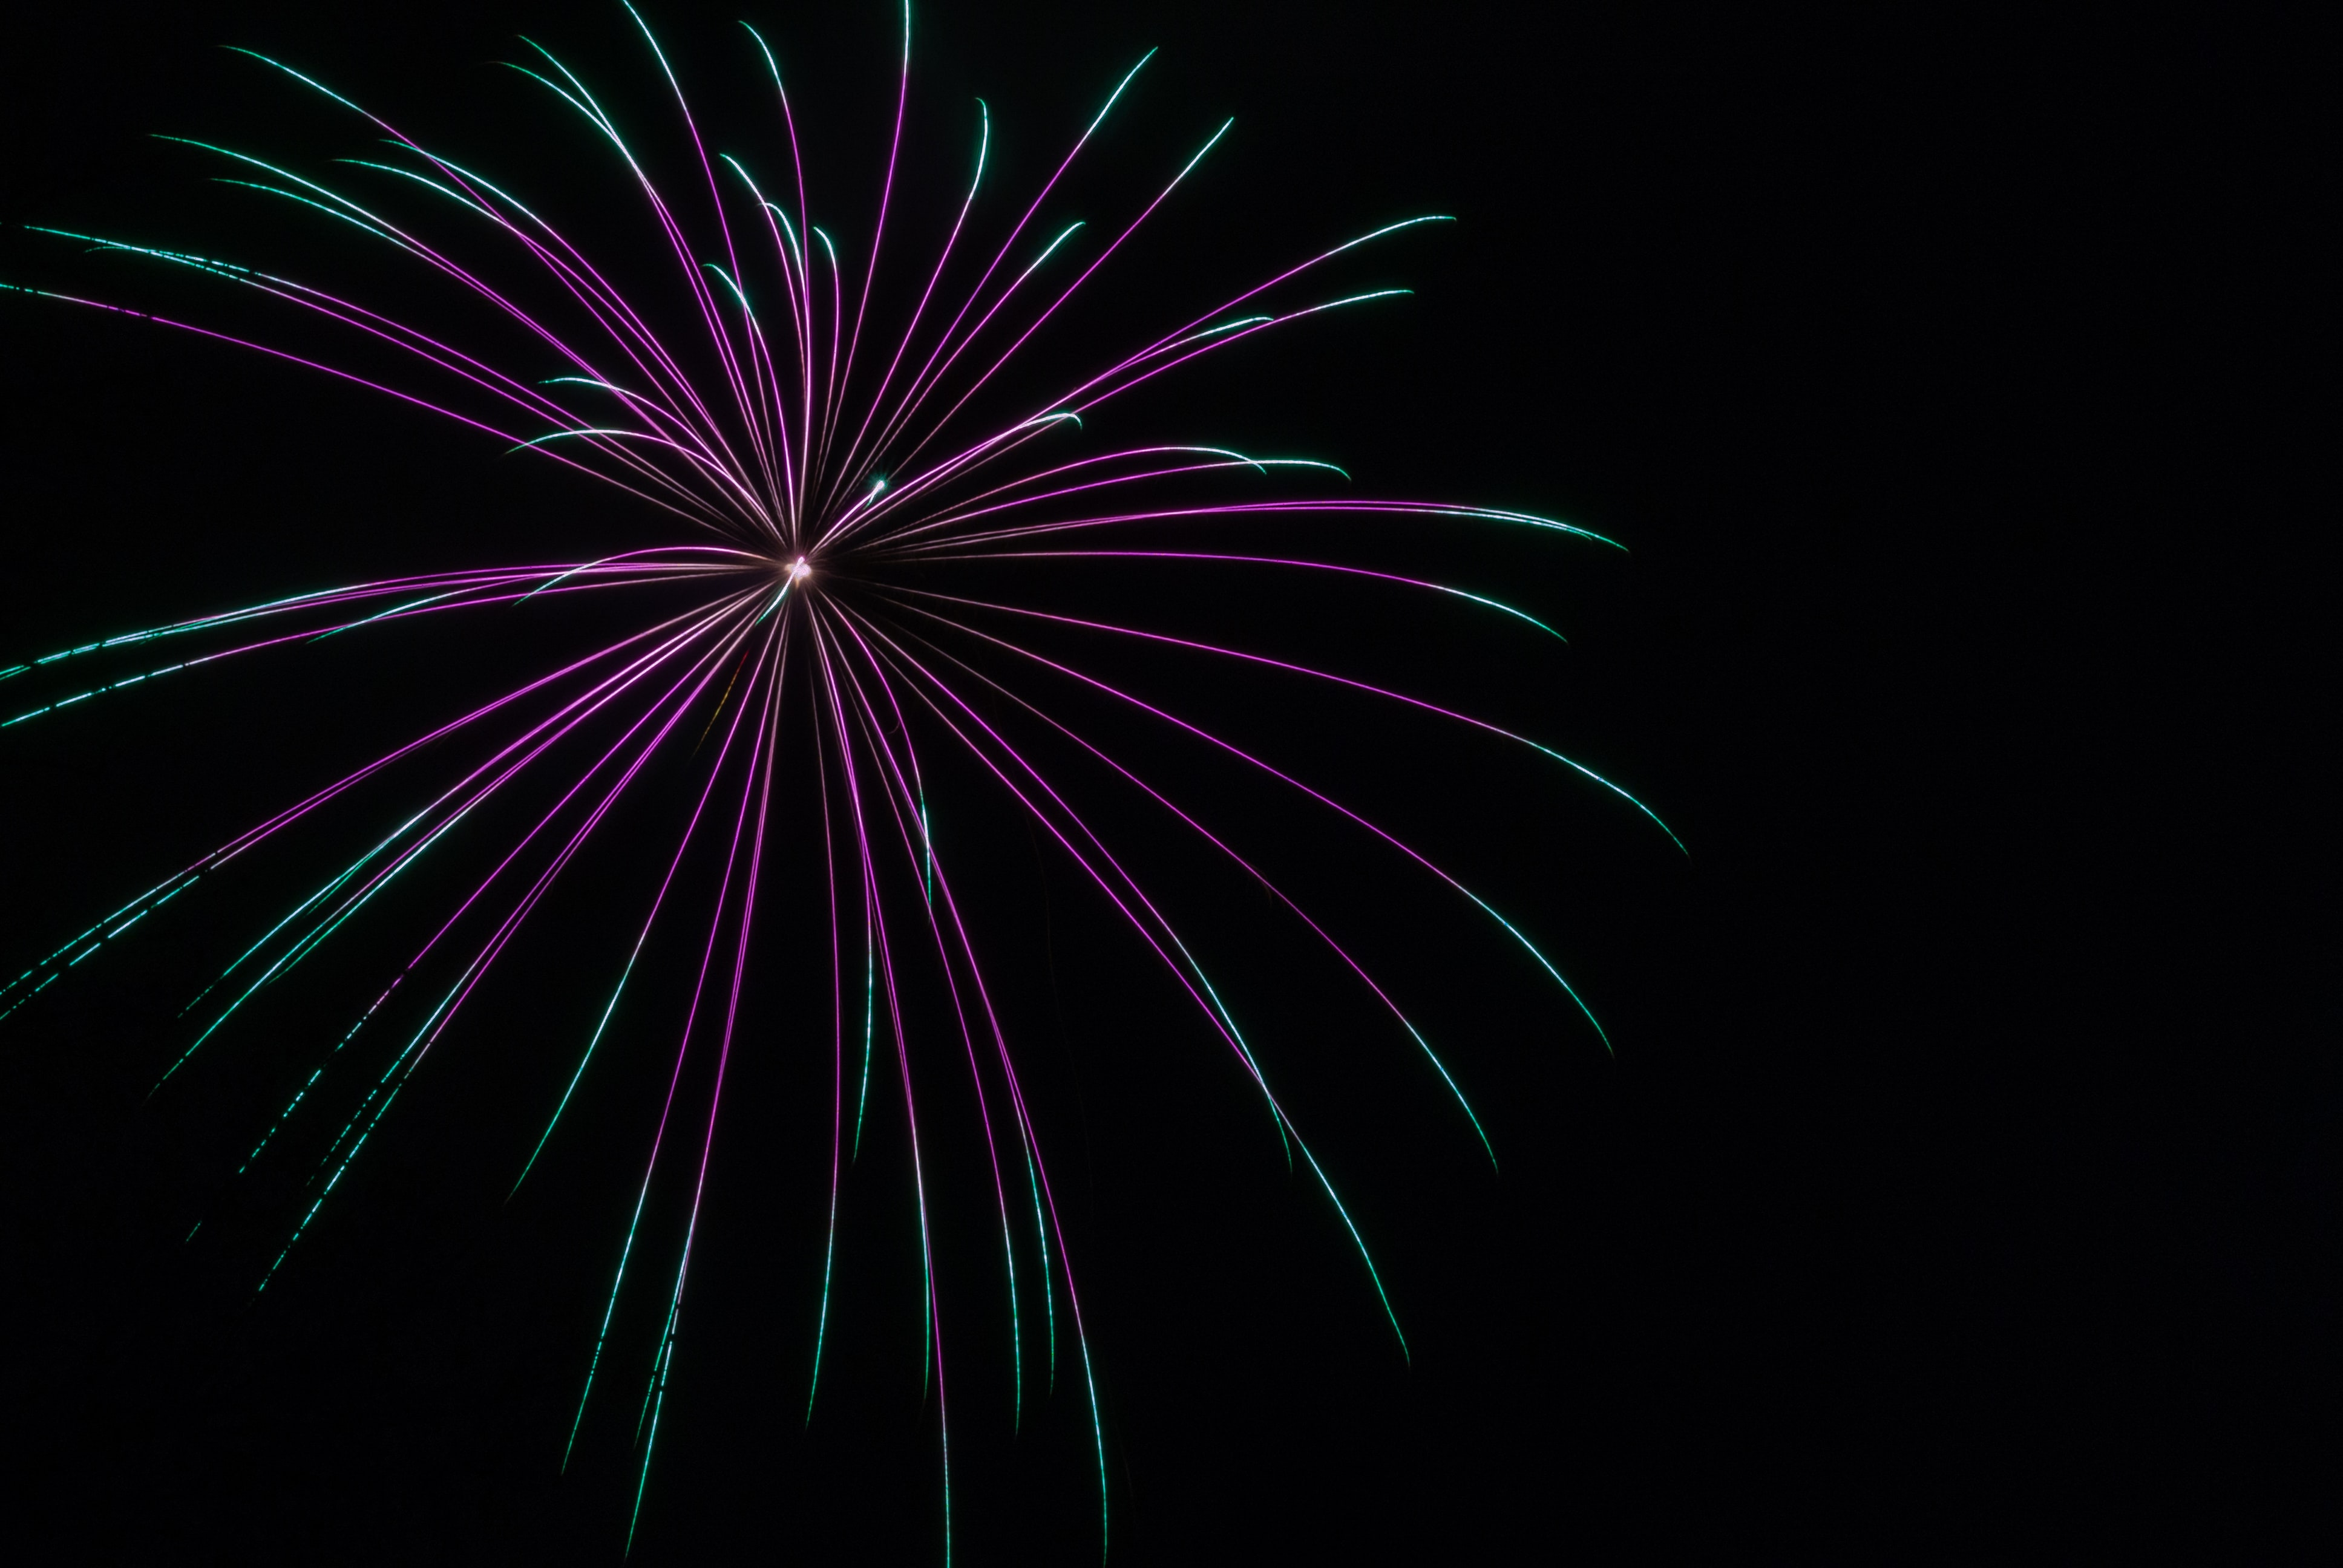 54472 Screensavers and Wallpapers Sparks for phone. Download Holidays, Night, Salute, Sparks, Holiday, Fireworks, Firework pictures for free